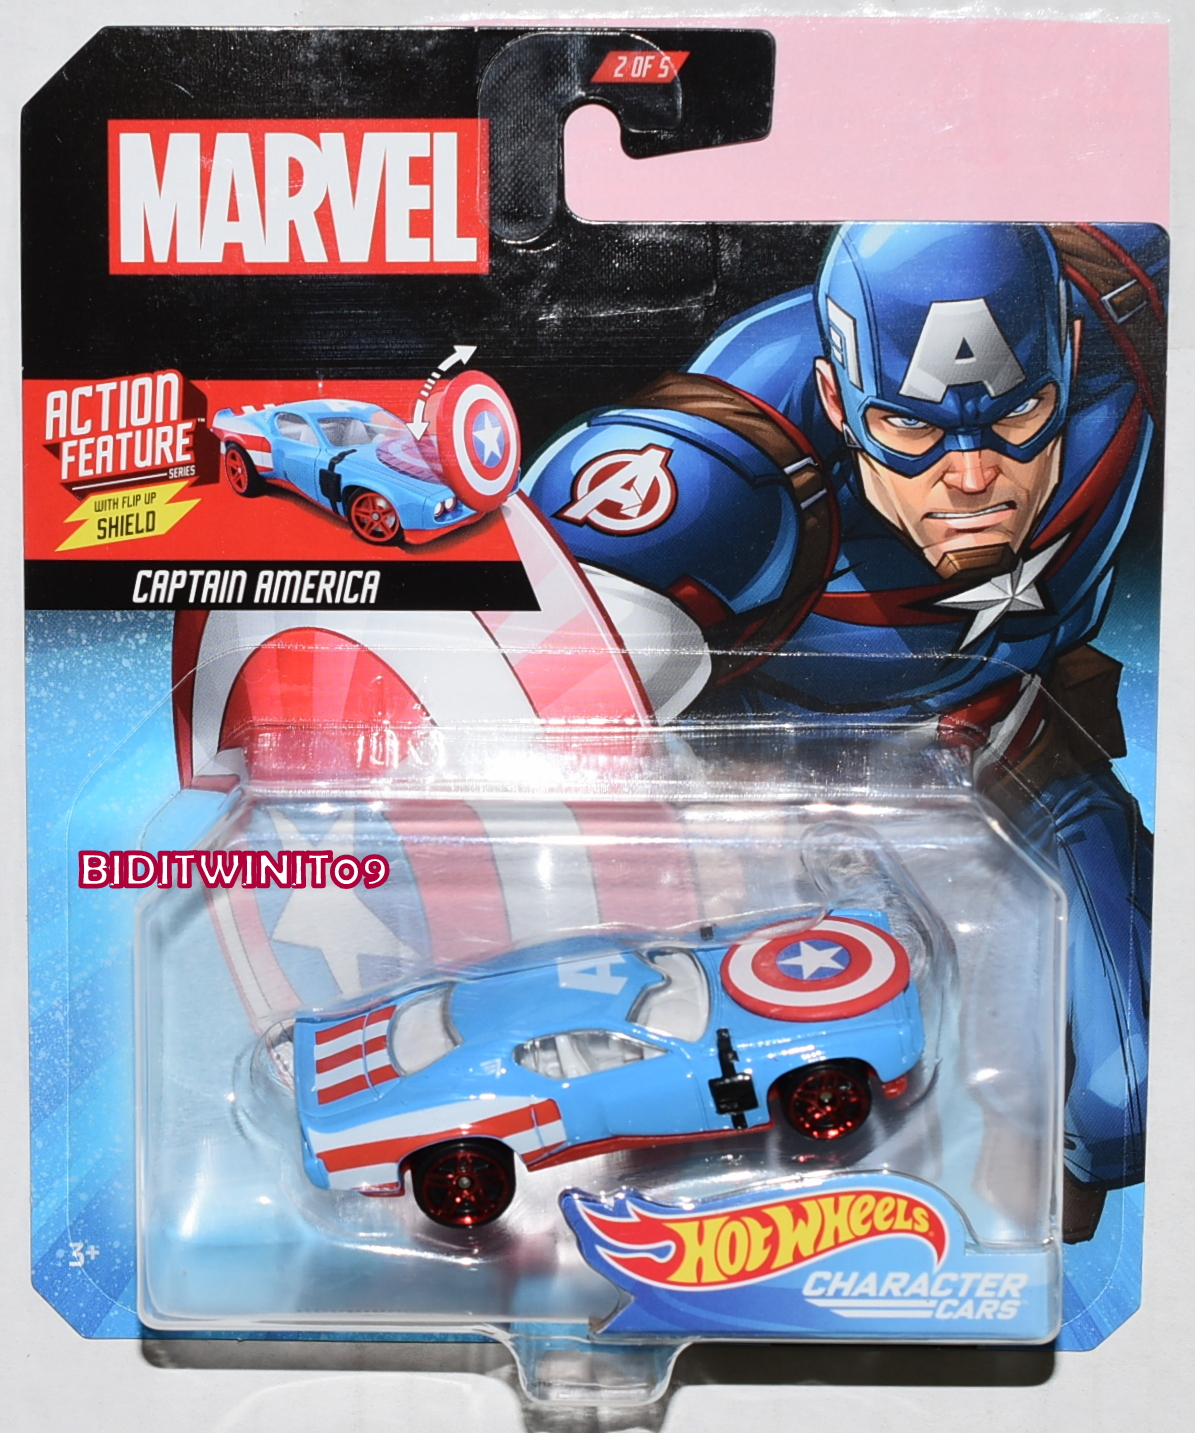 HOT WHEELS MARVEL CAPTAIN AMERICA W/ FLIP UP SHIELD CHARACTER CARS